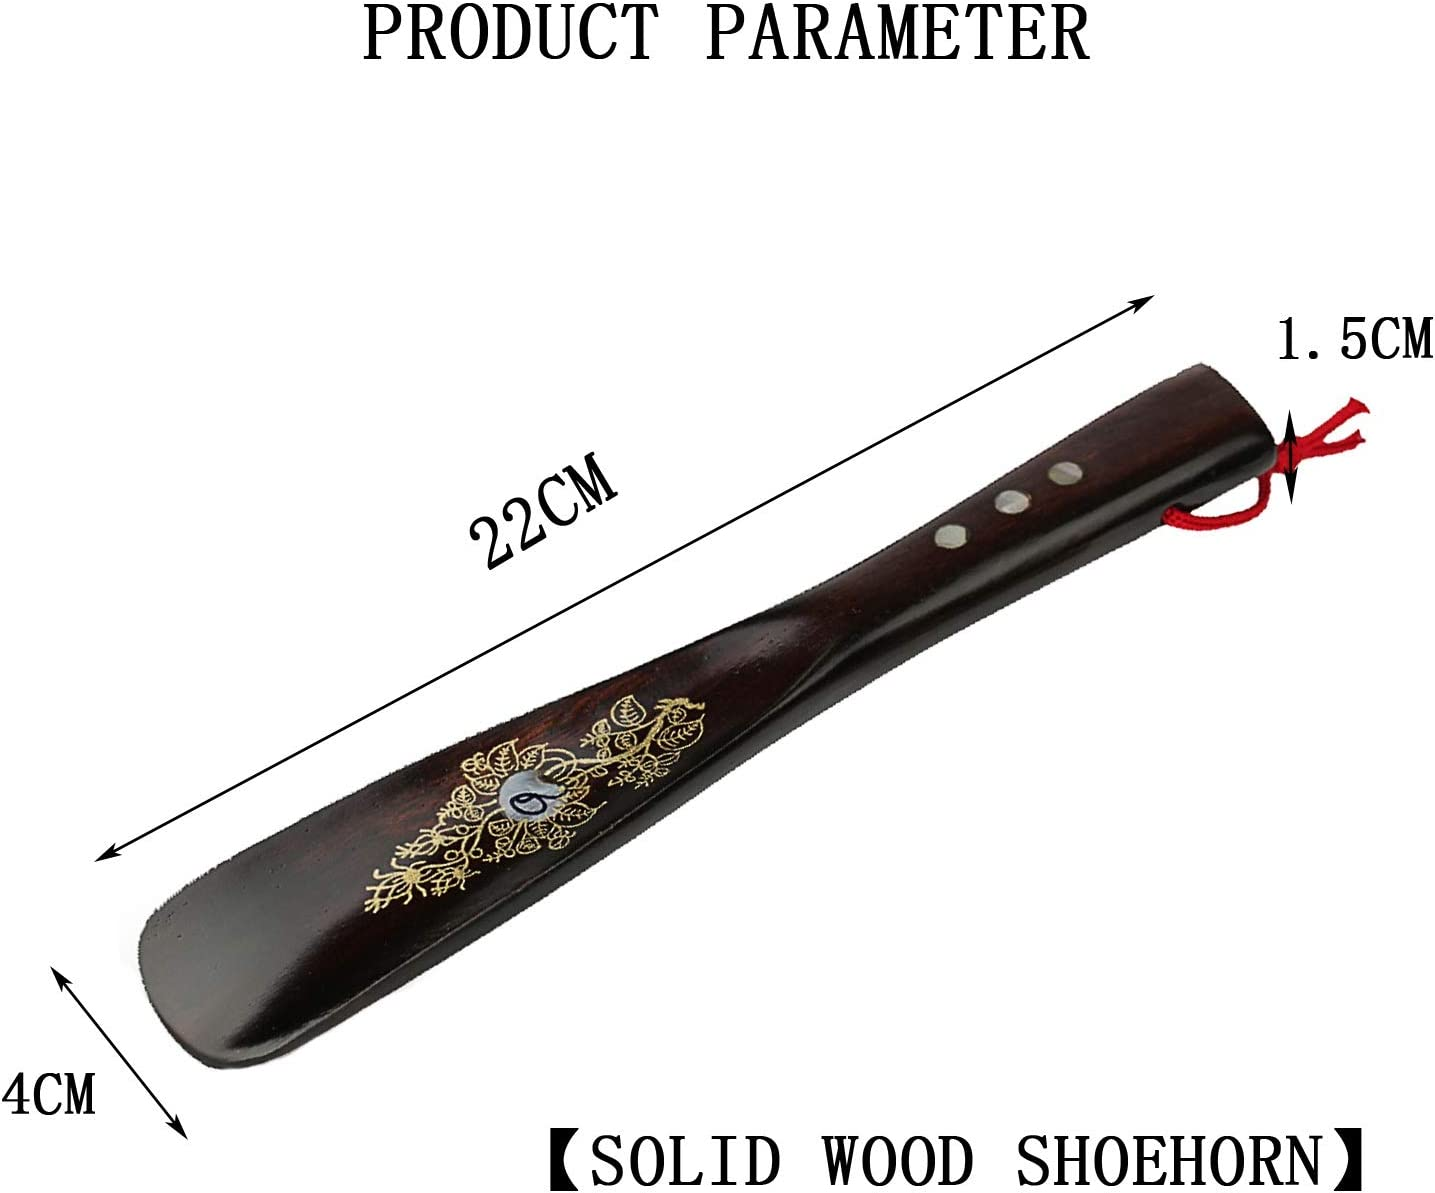 Color : Brown, Size : 22x4cm adad Long Shoe Horn-Shoe Horn Small Size Solid Wood Shoehorn Household Portable Shoe Lifter Can Be Carried With You